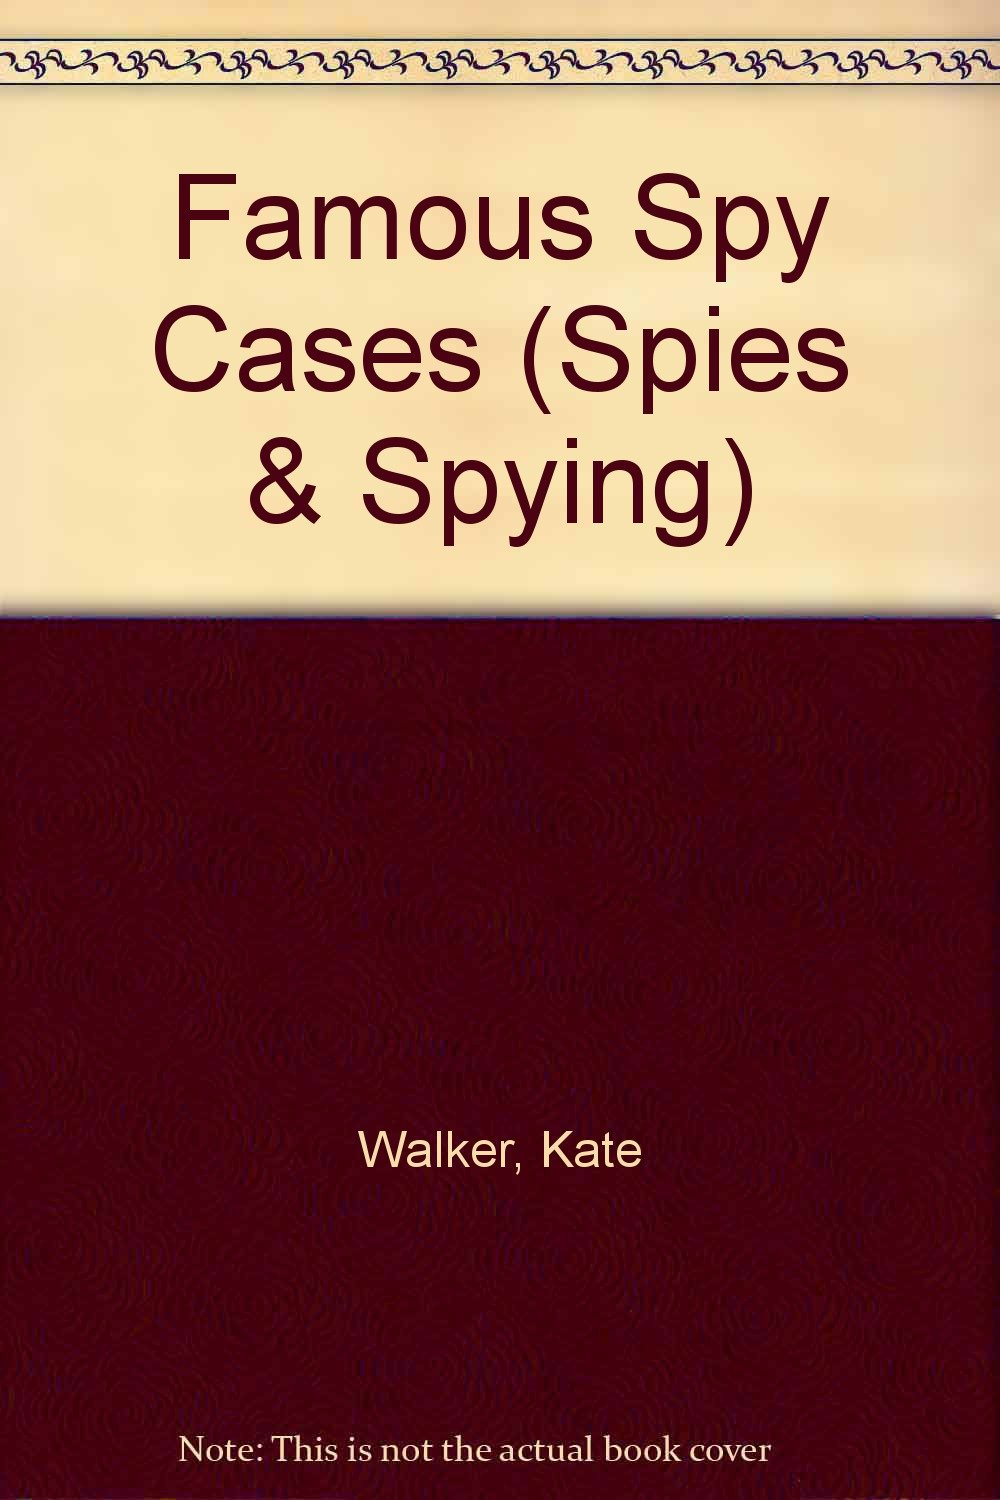 Famous Spy Cases (Spies and Spying)